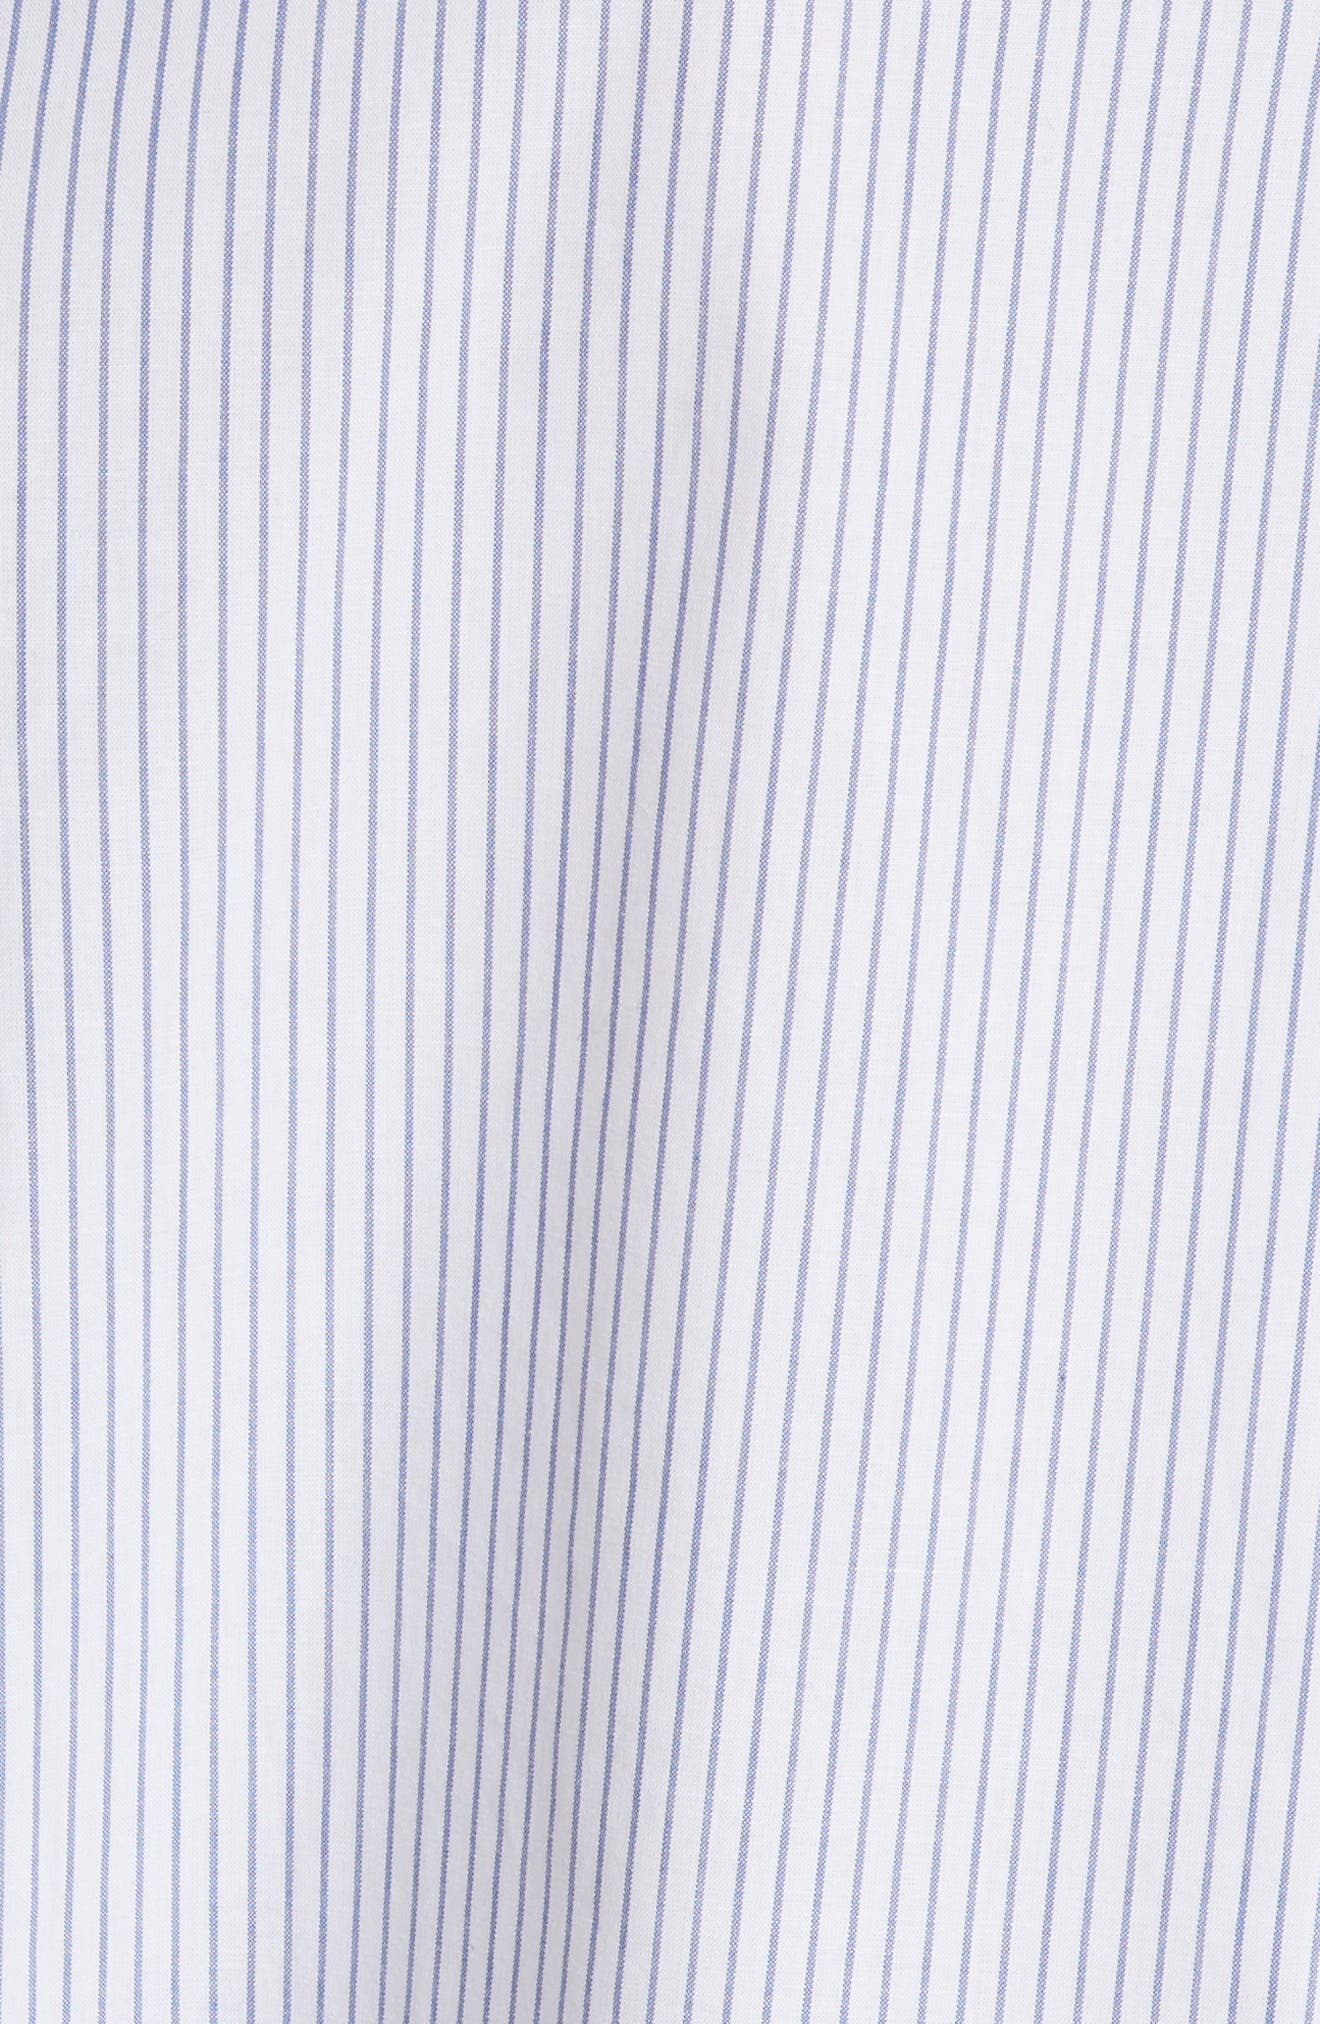 stripe ruffle neck poplin shirt,                             Alternate thumbnail 6, color,                             Fresh White/ Deep Ultramarine